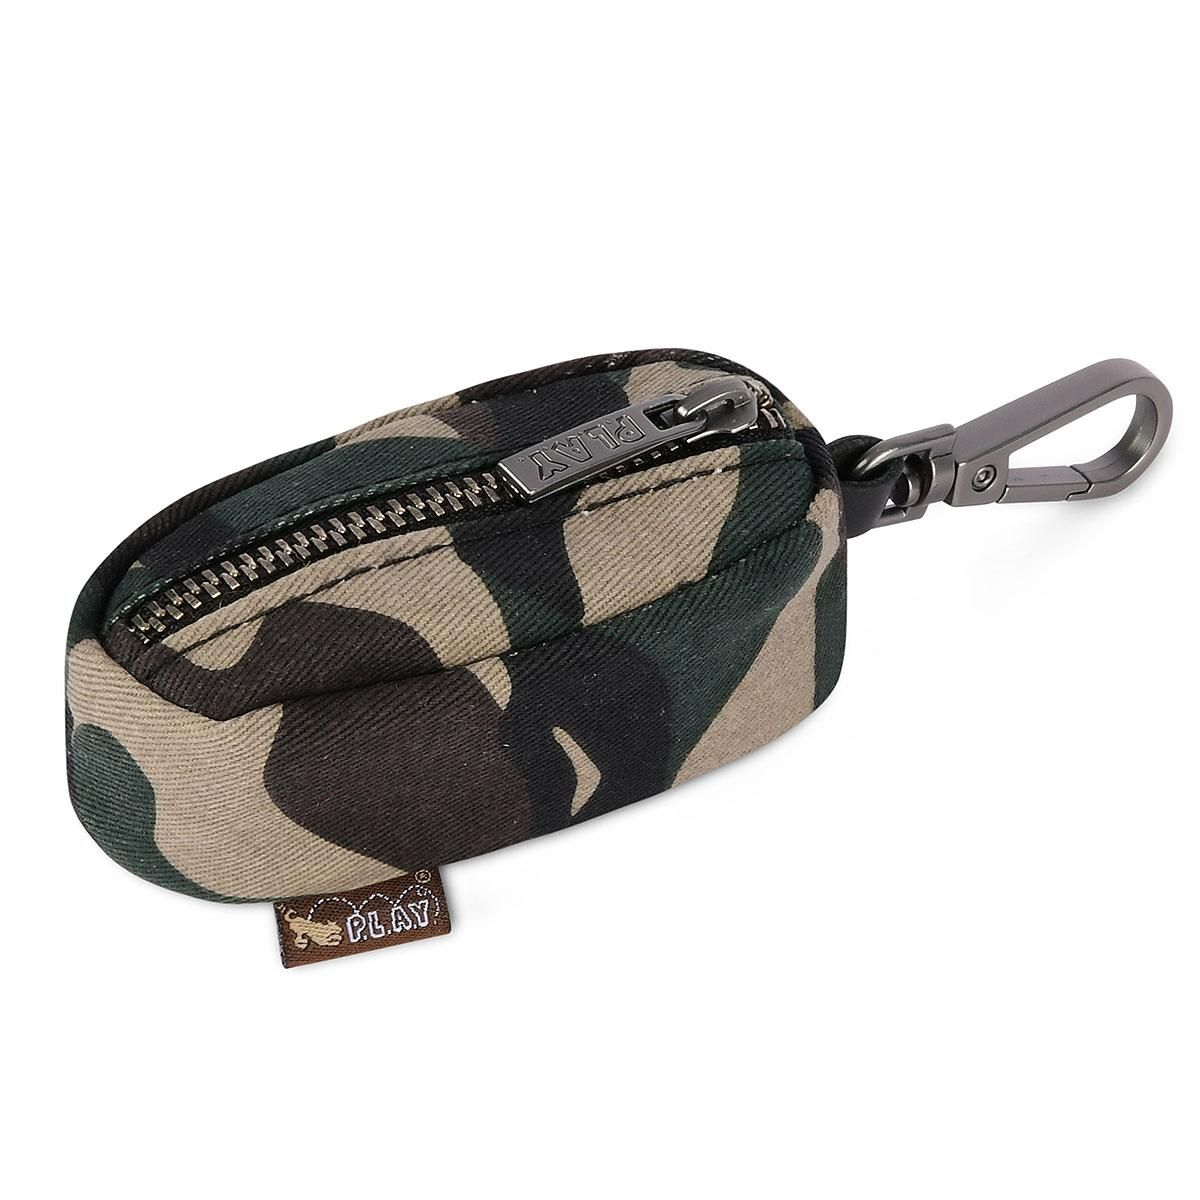 P.L.A.Y. Proper Pup Poop Bag Dispenser - Camo Green at BaxterBoo.com